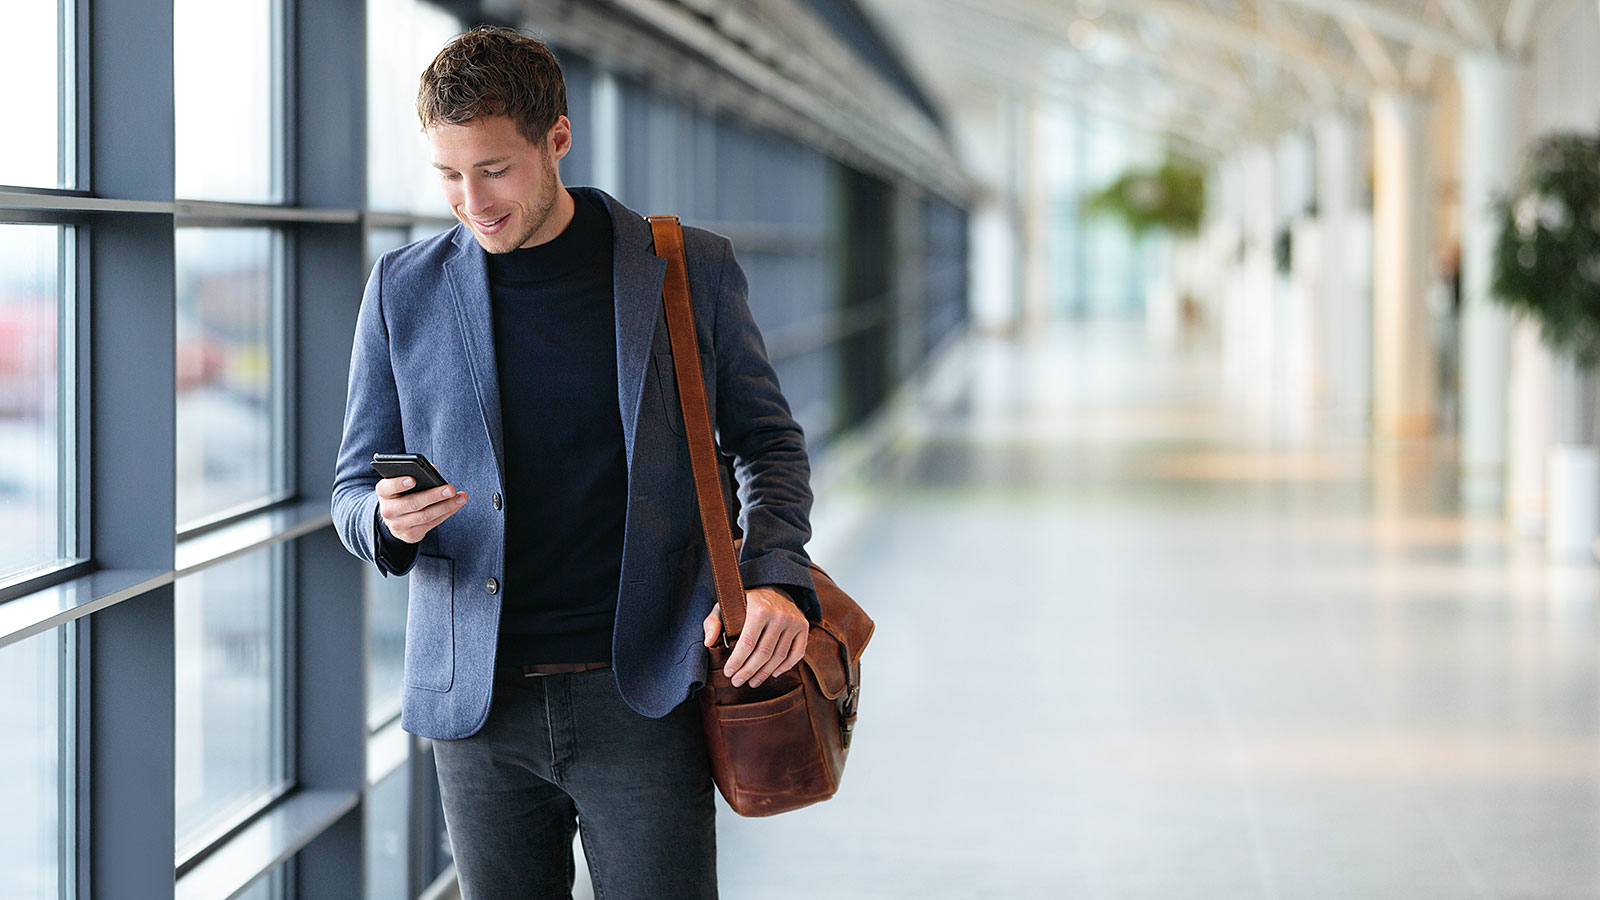 13 essential tips for business travel (from the experts)